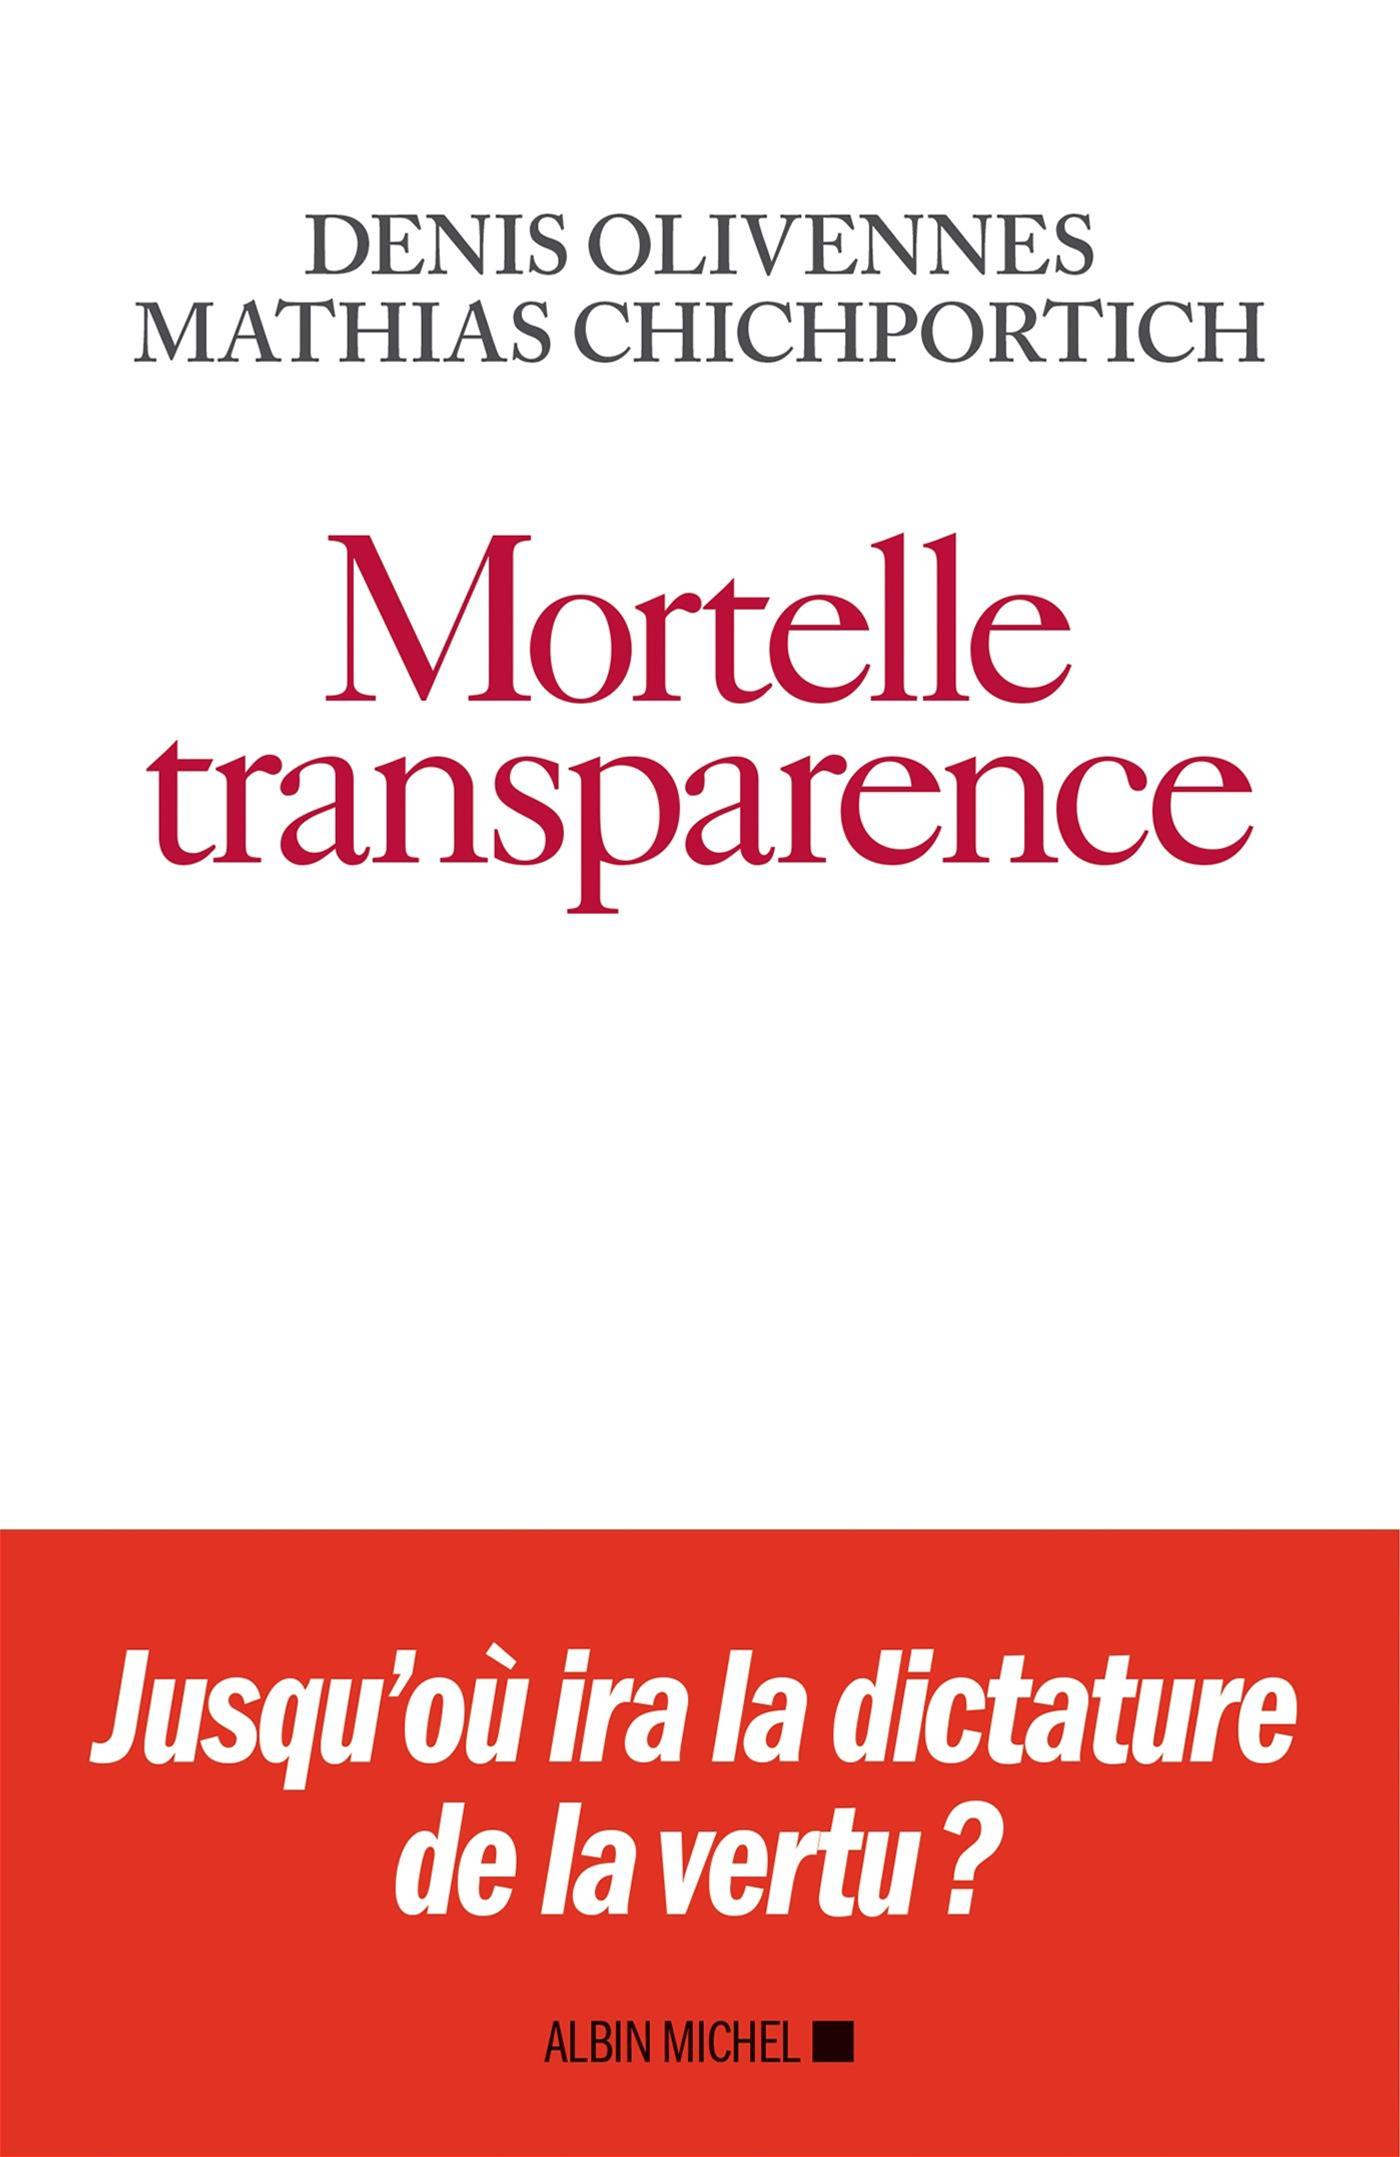 Mortelle Transparence